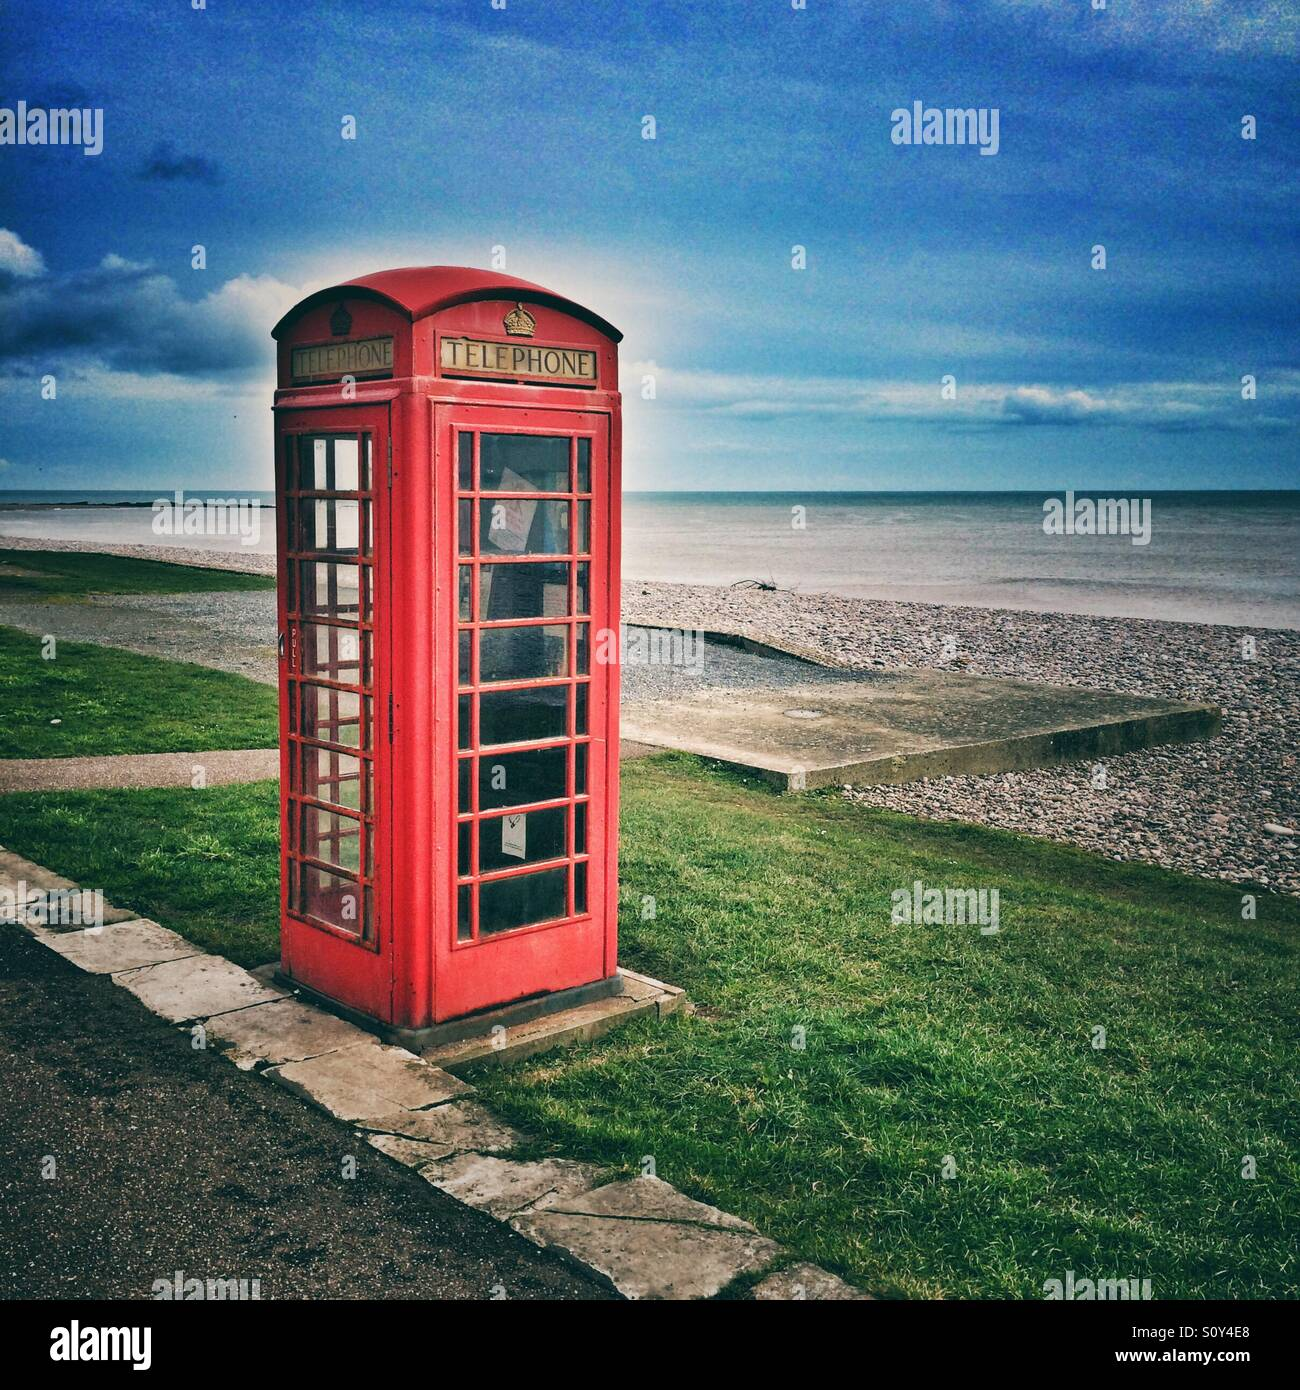 A red telephone box next to the sea - Stock Image